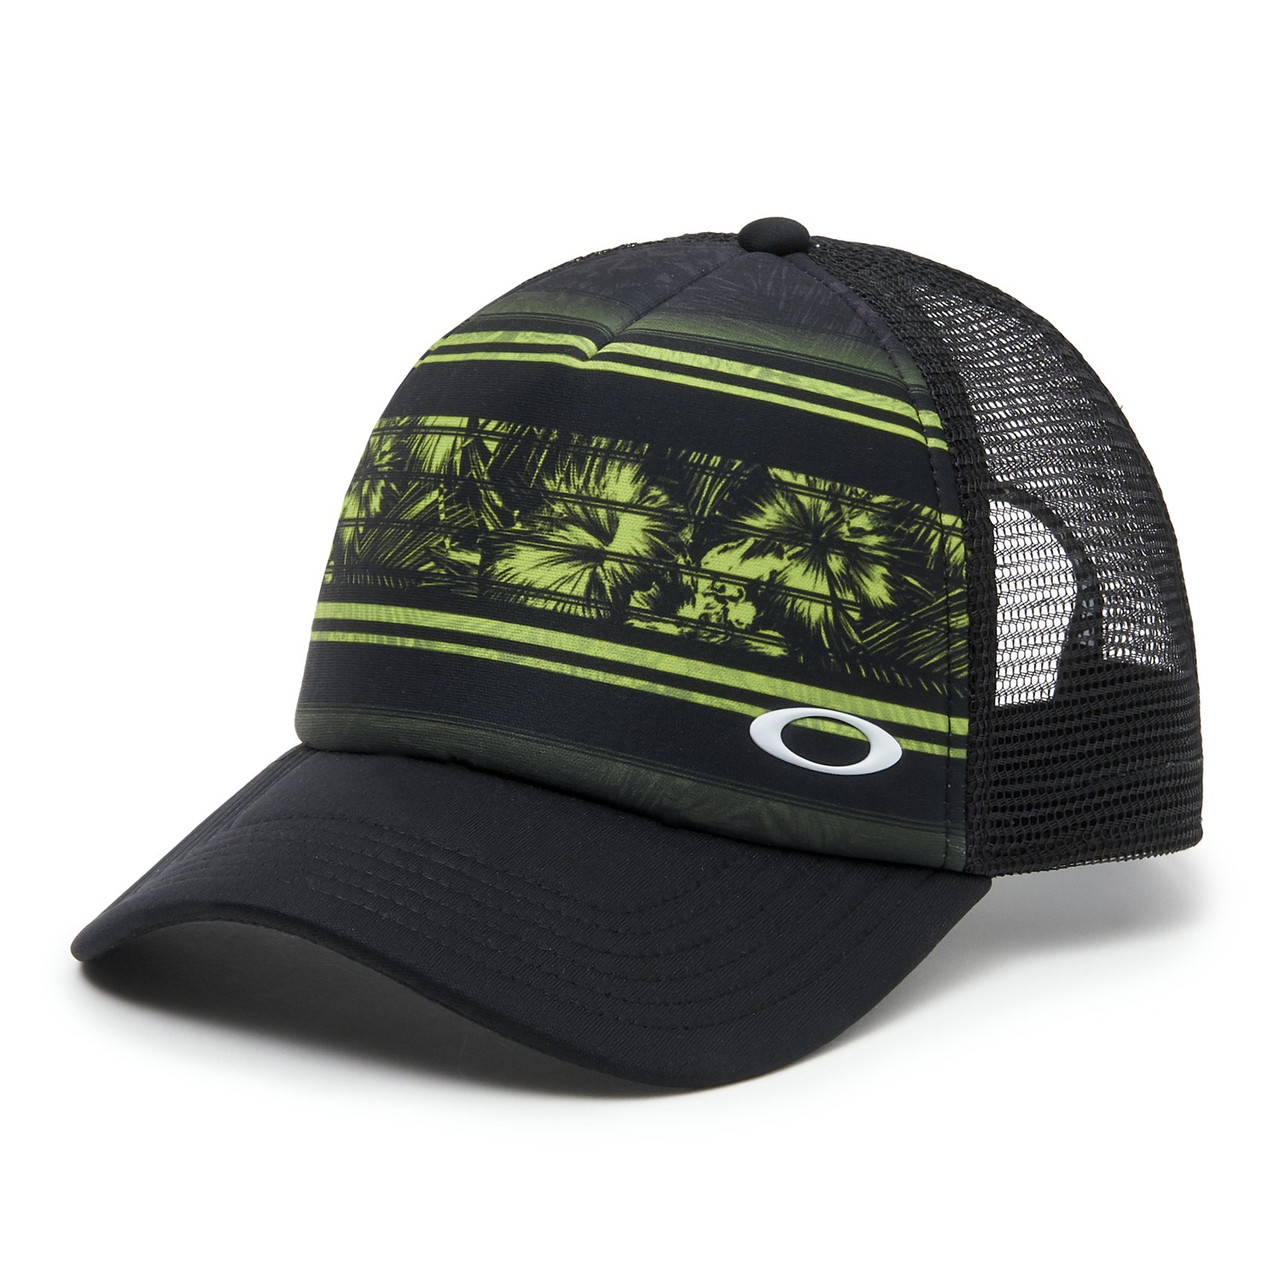 ae0d8f6faefe40 Oakley Hat - Mesh Sublimated Trucker - Lime Green - Surf and Dirt